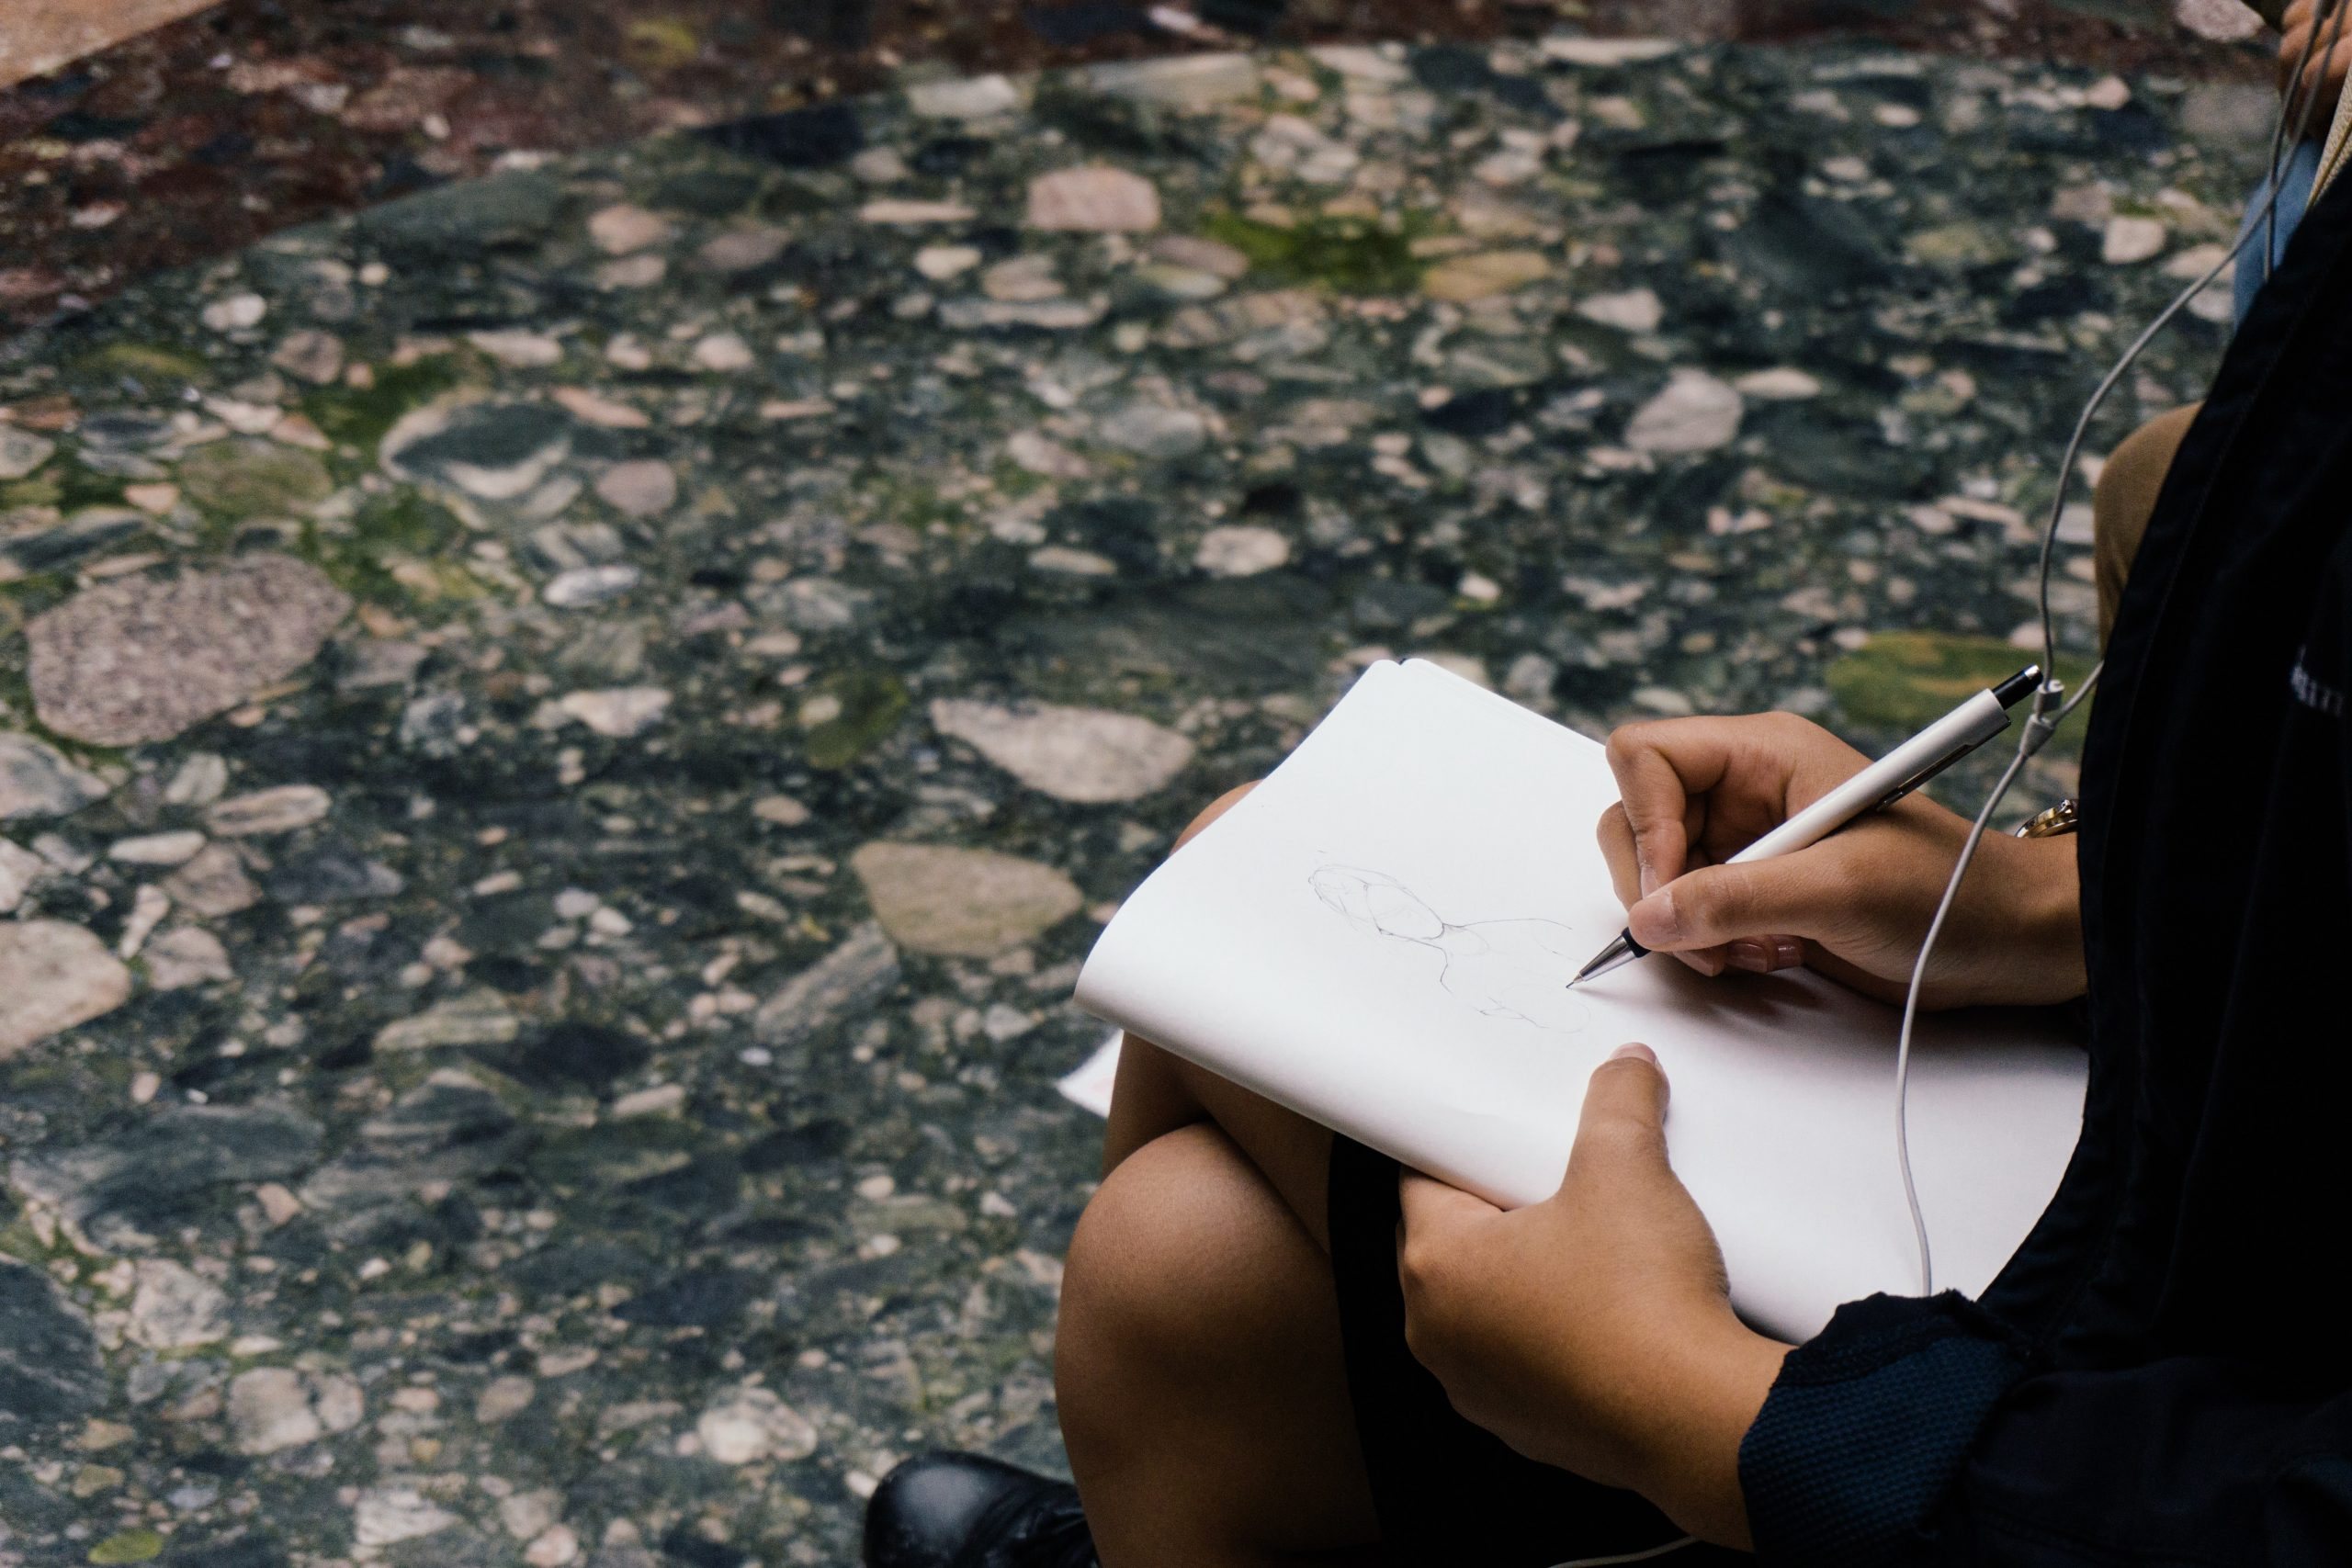 A person is outside with their hands seen drawing on a notepad